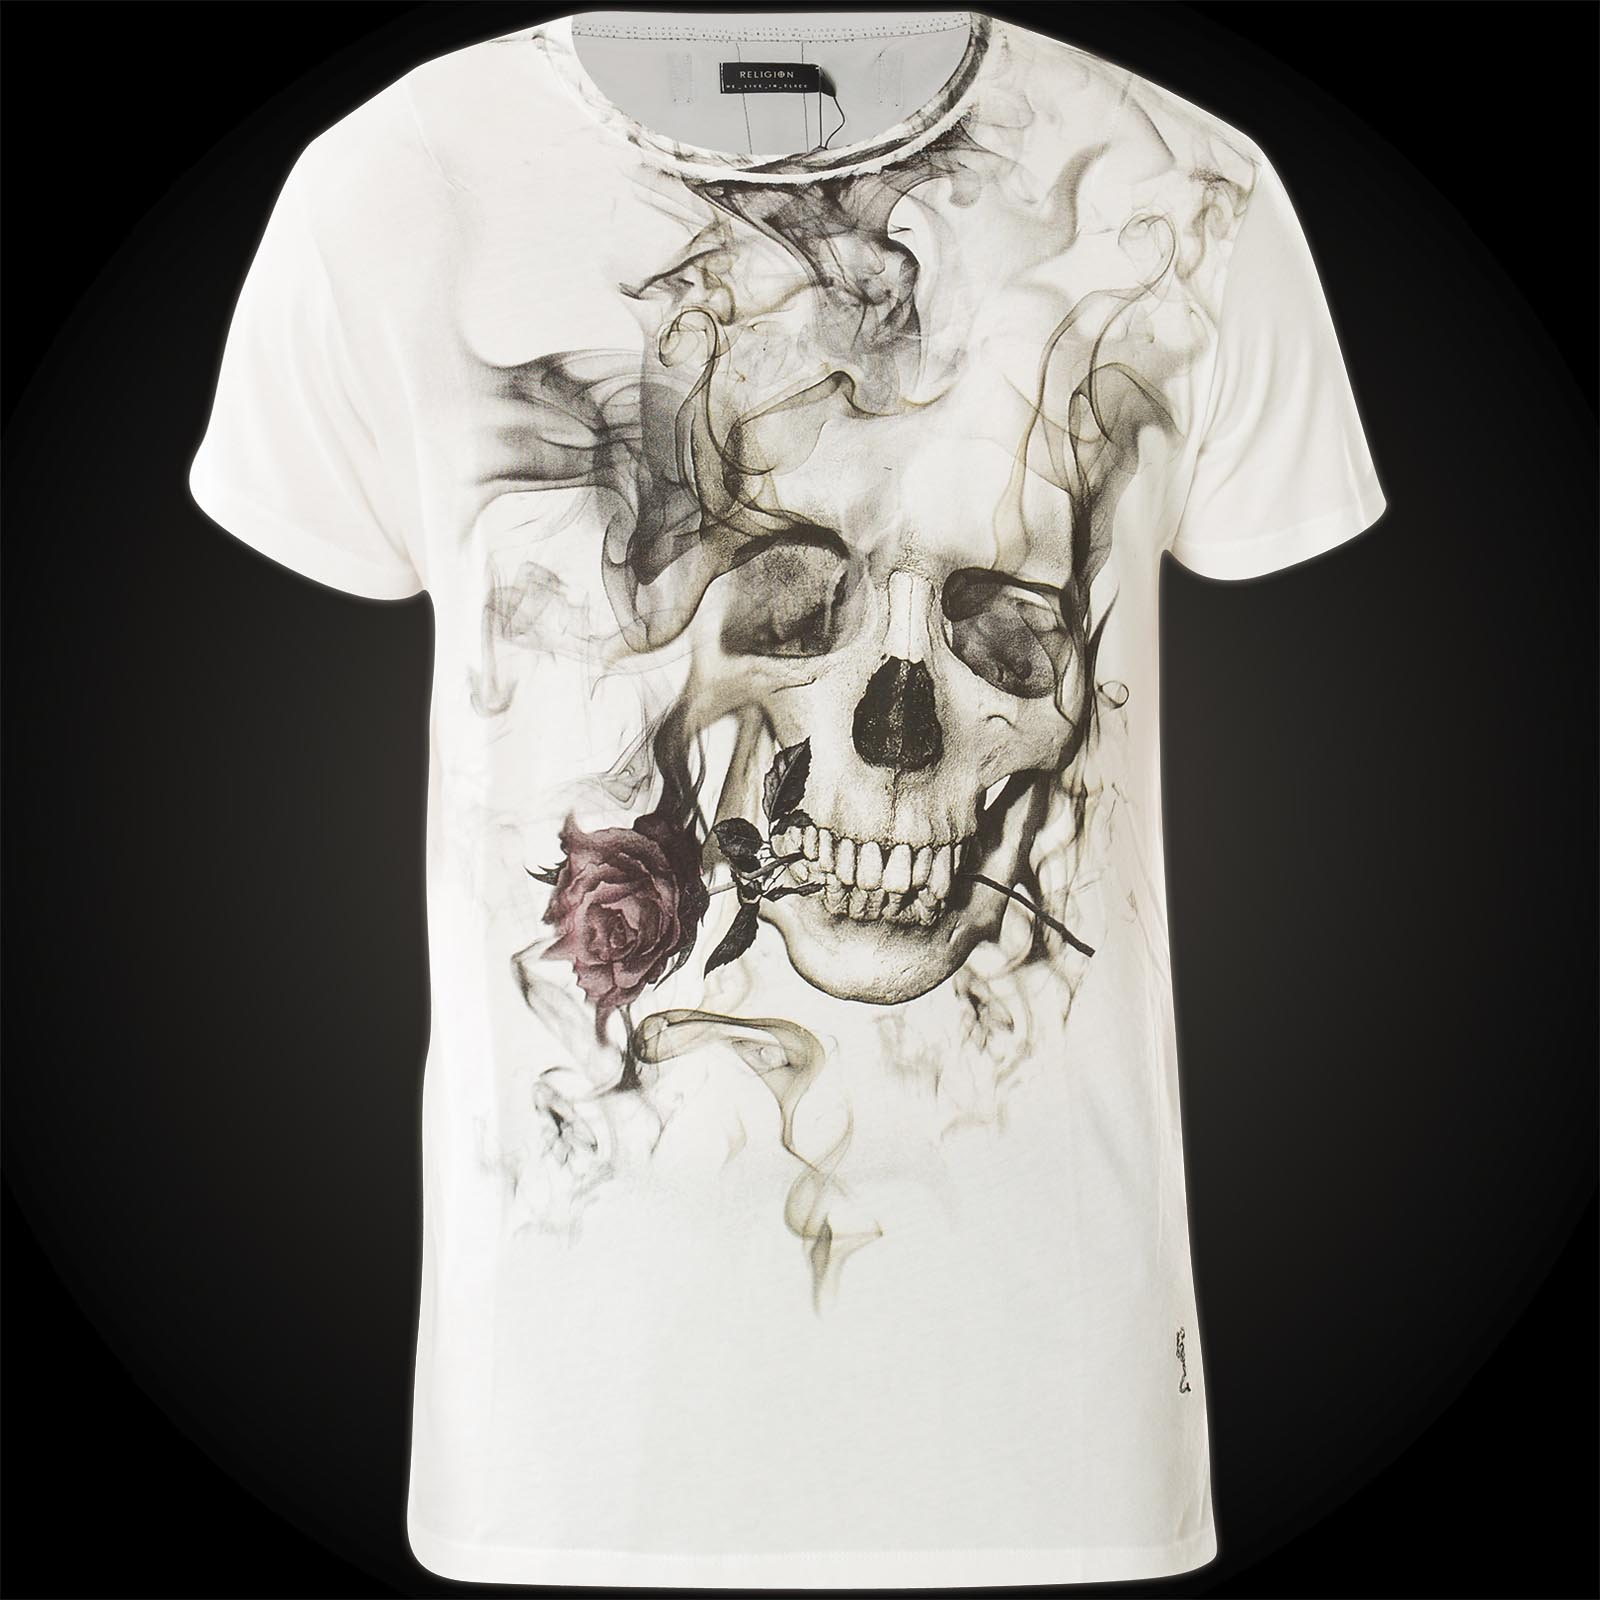 religion t shirt smokey skull 37bssf39 with a smoking skull and a rose. Black Bedroom Furniture Sets. Home Design Ideas